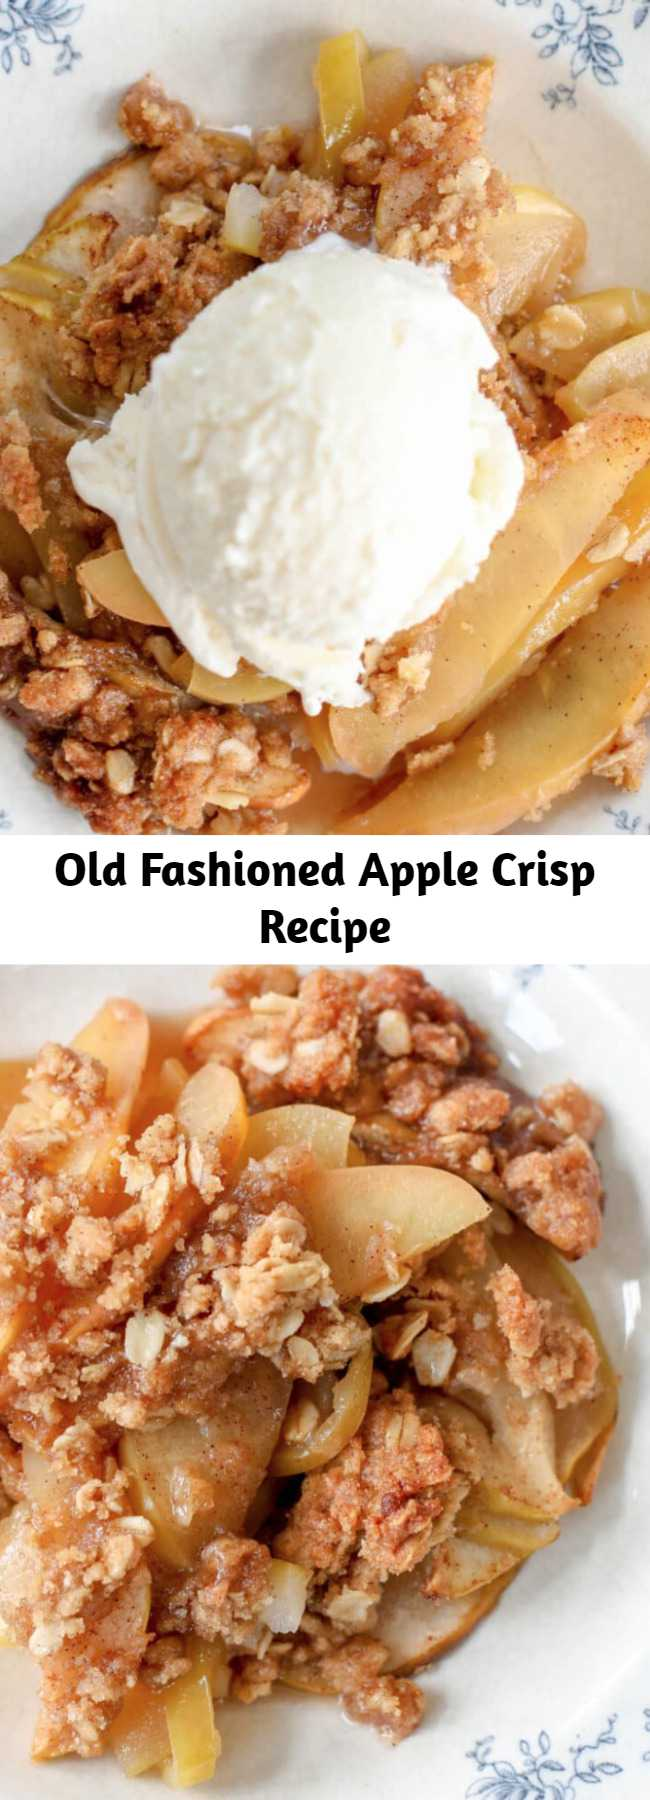 Old Fashioned Apple Crisp Recipe - Buttery brown sugar and oat topping over sweet baked apples is a heavenly dessert year round. Topped with vanilla ice cream this is a classic dessert that's great for any occassion.